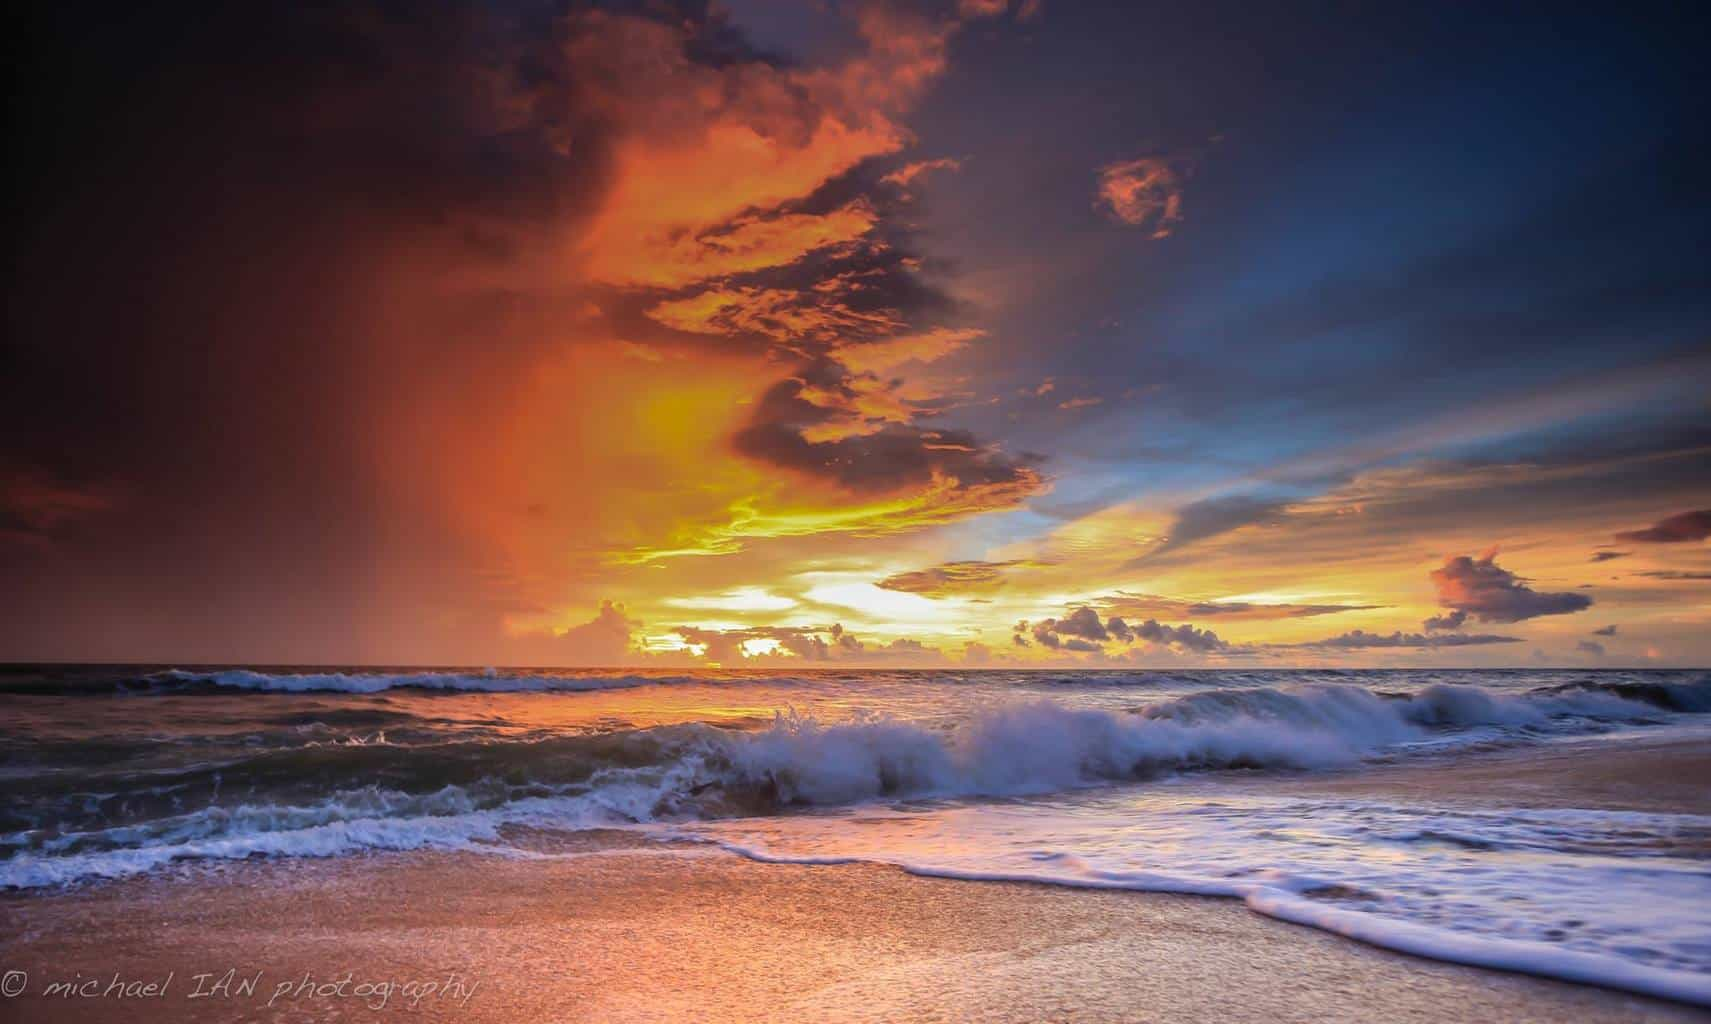 When the storms and the sunrise collide!